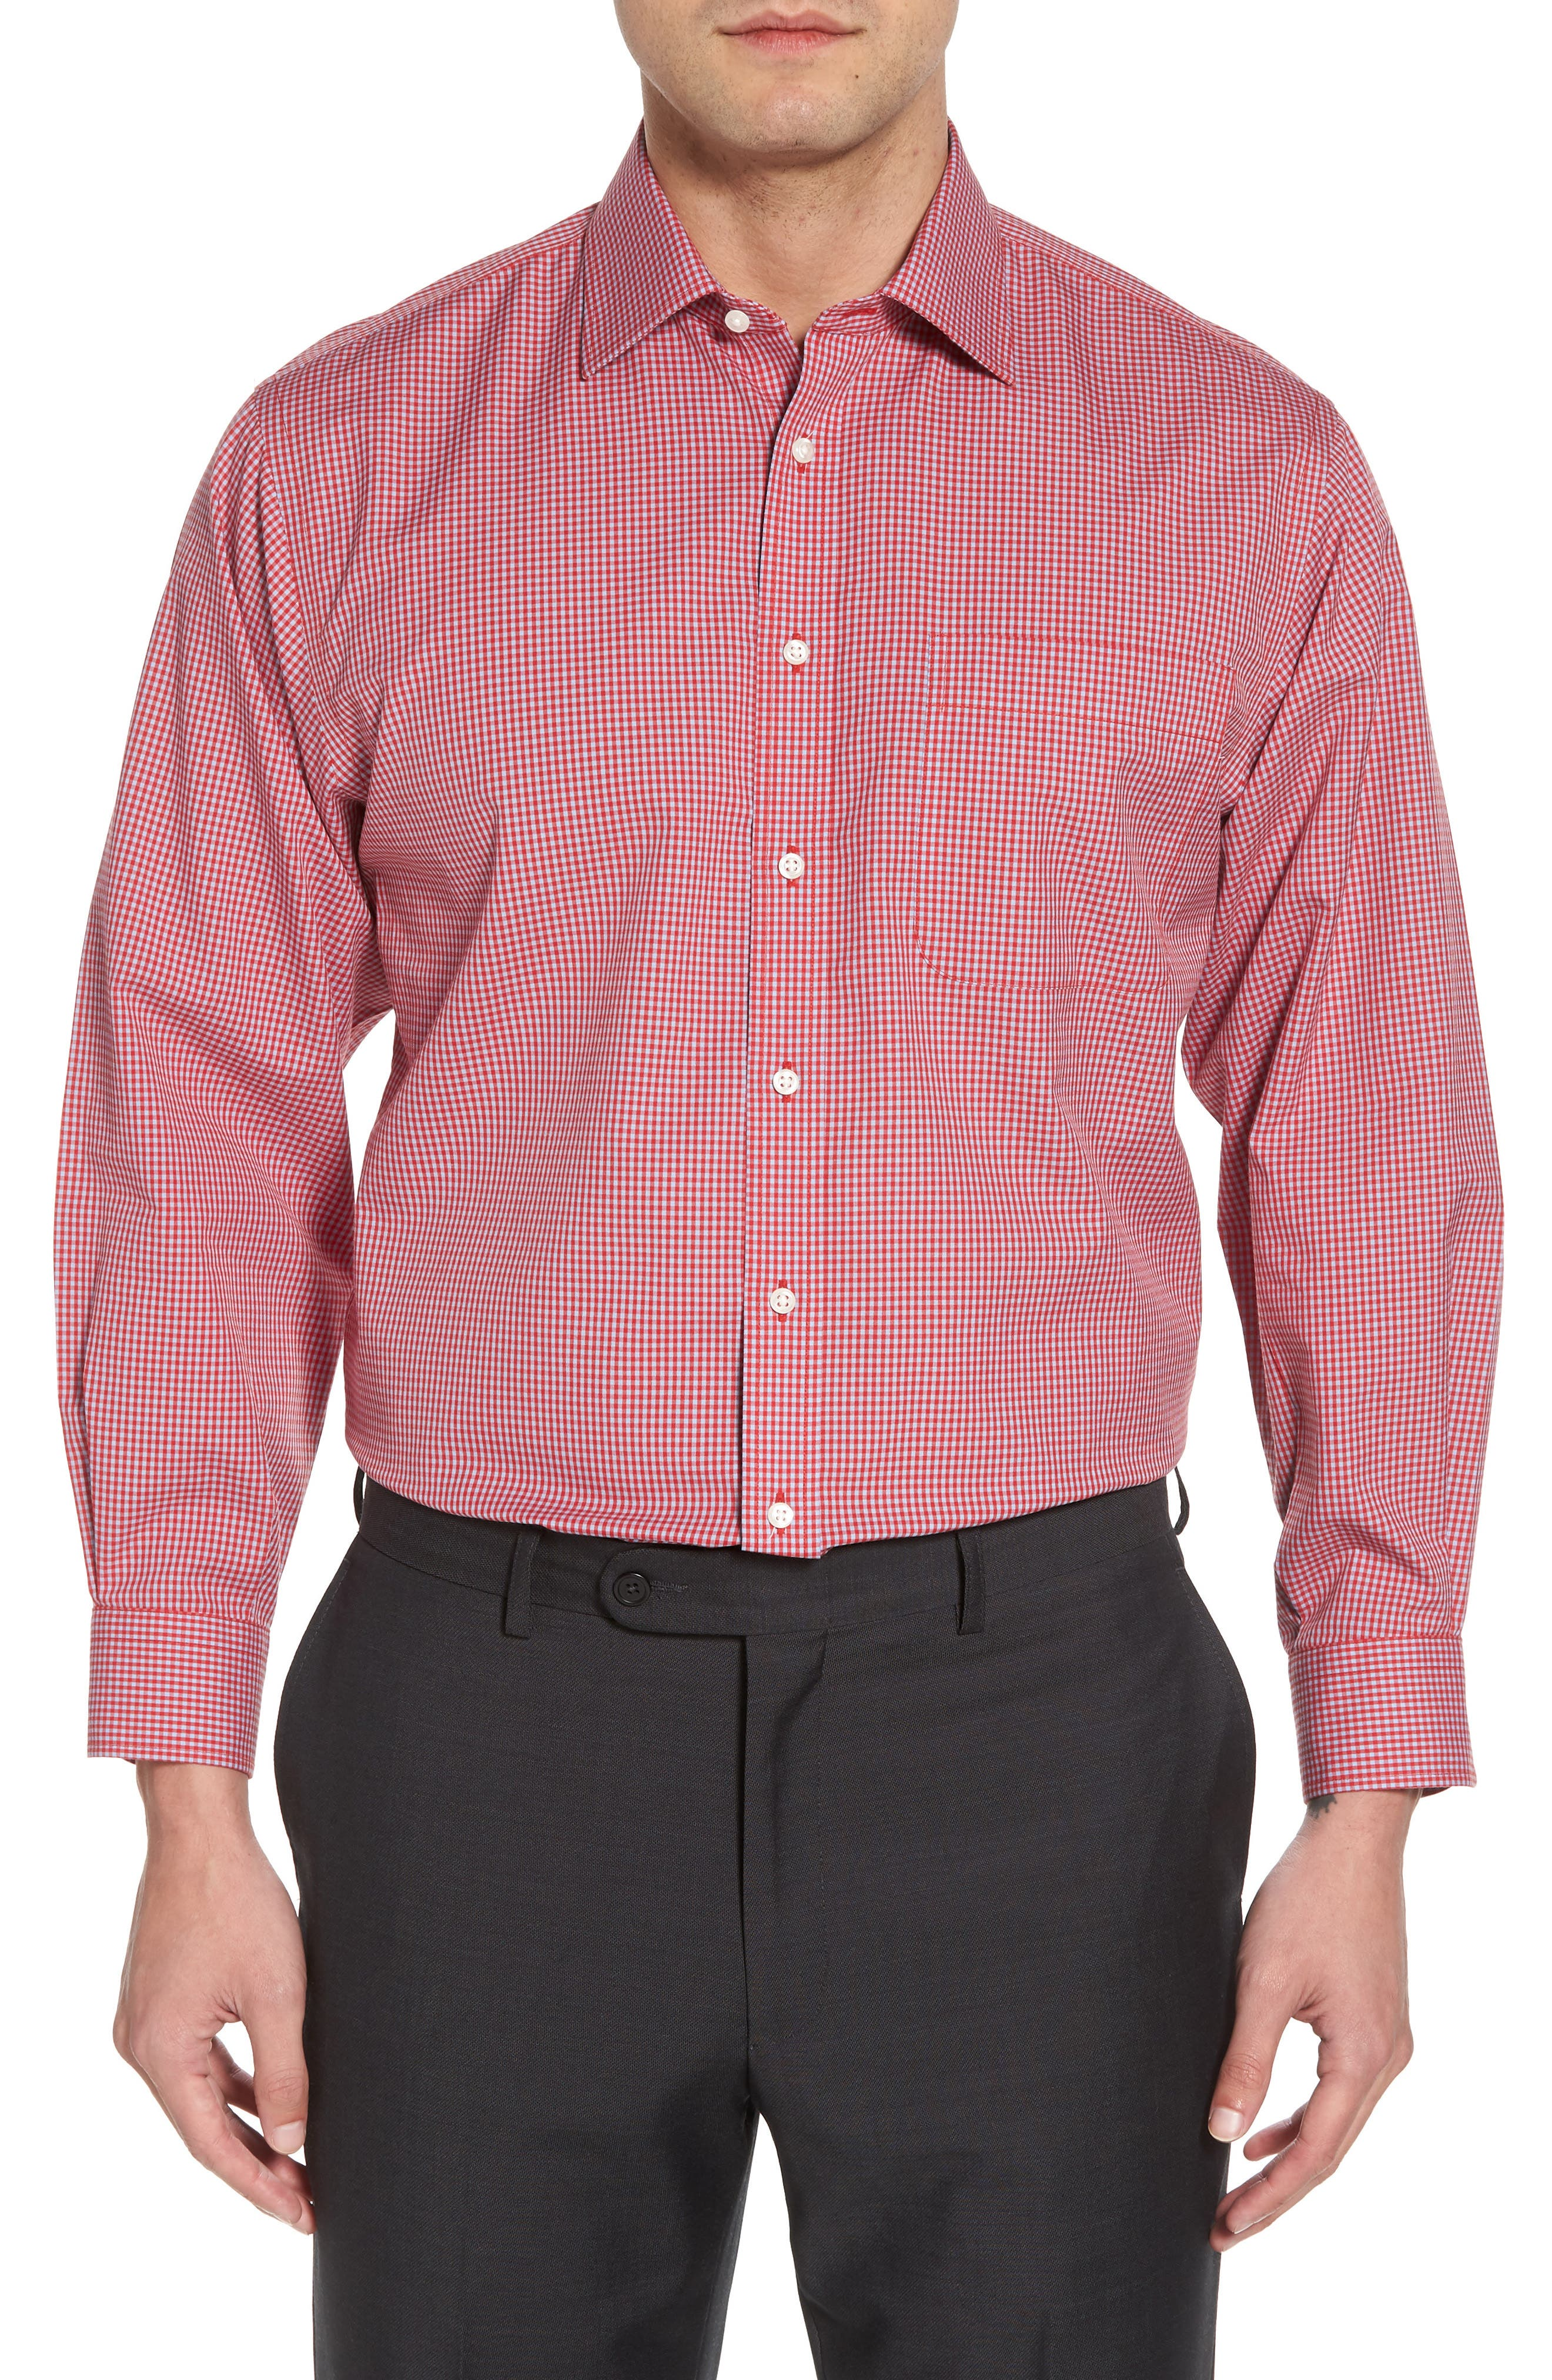 Alternate Image 1 Selected - Nordstrom Men's Shop Smartcare Classic Fit Check Dress Shirt